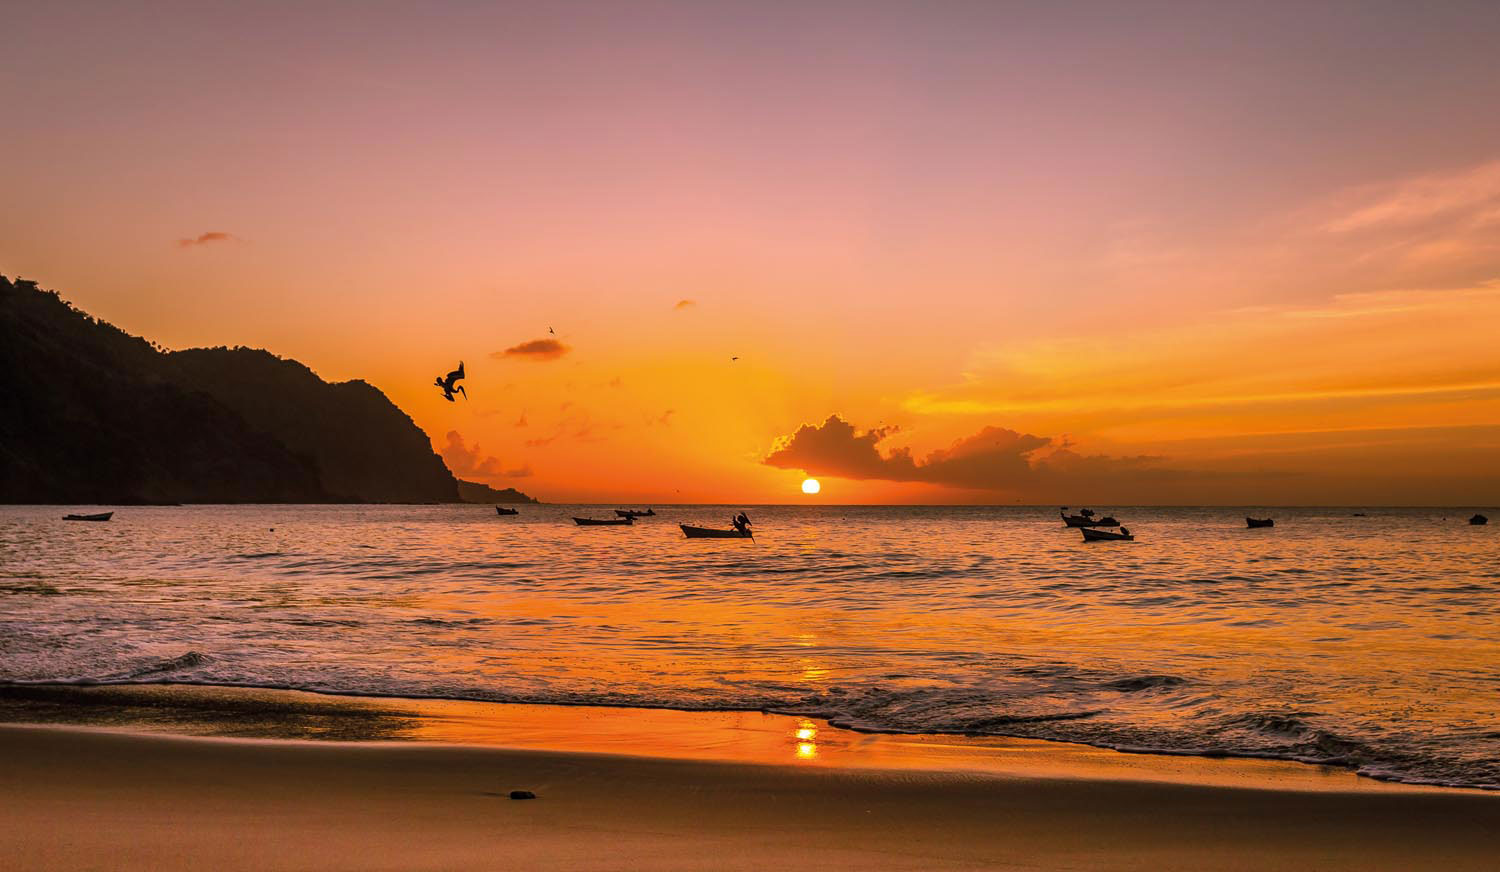 The sun sets at the end of another romantic day at Castara Bay, Tobago. Photo by Coatesy/Shutterstock.com